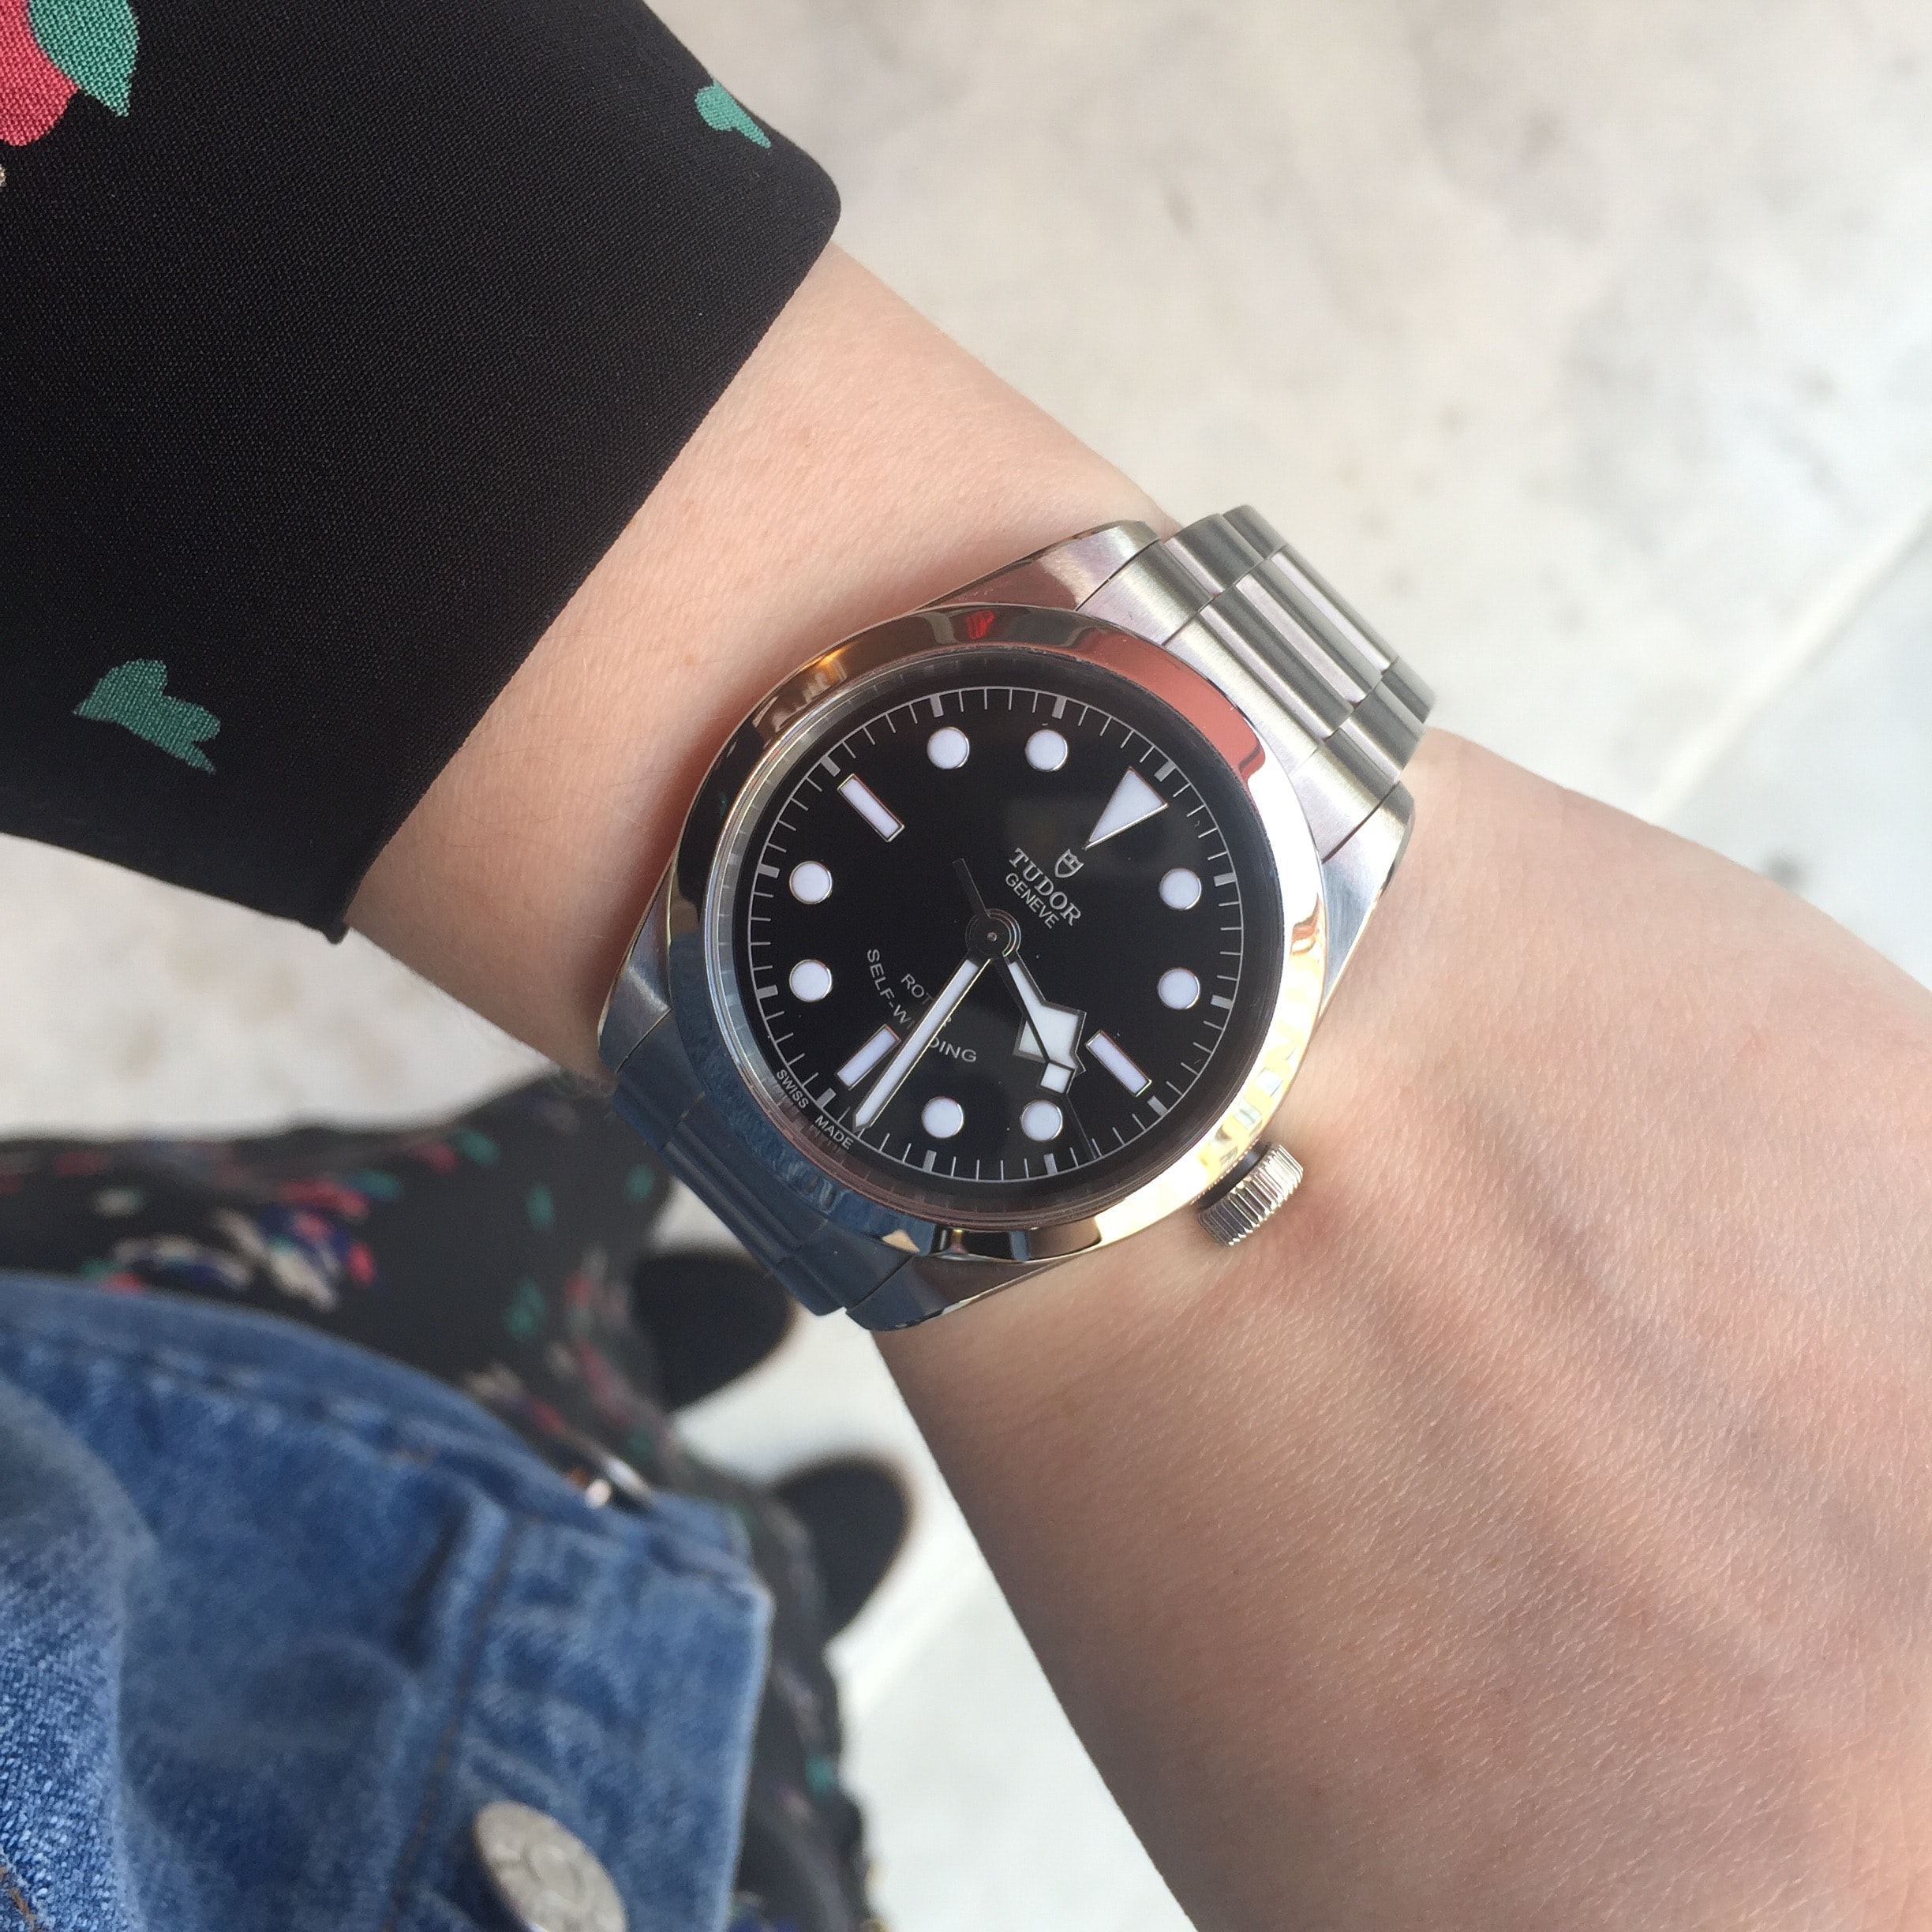 The Watch I Wore The Most In 2016, By Members Of The HODINKEE Team The Watch I Wore The Most In 2016, By Members Of The HODINKEE Team FullSizeRender